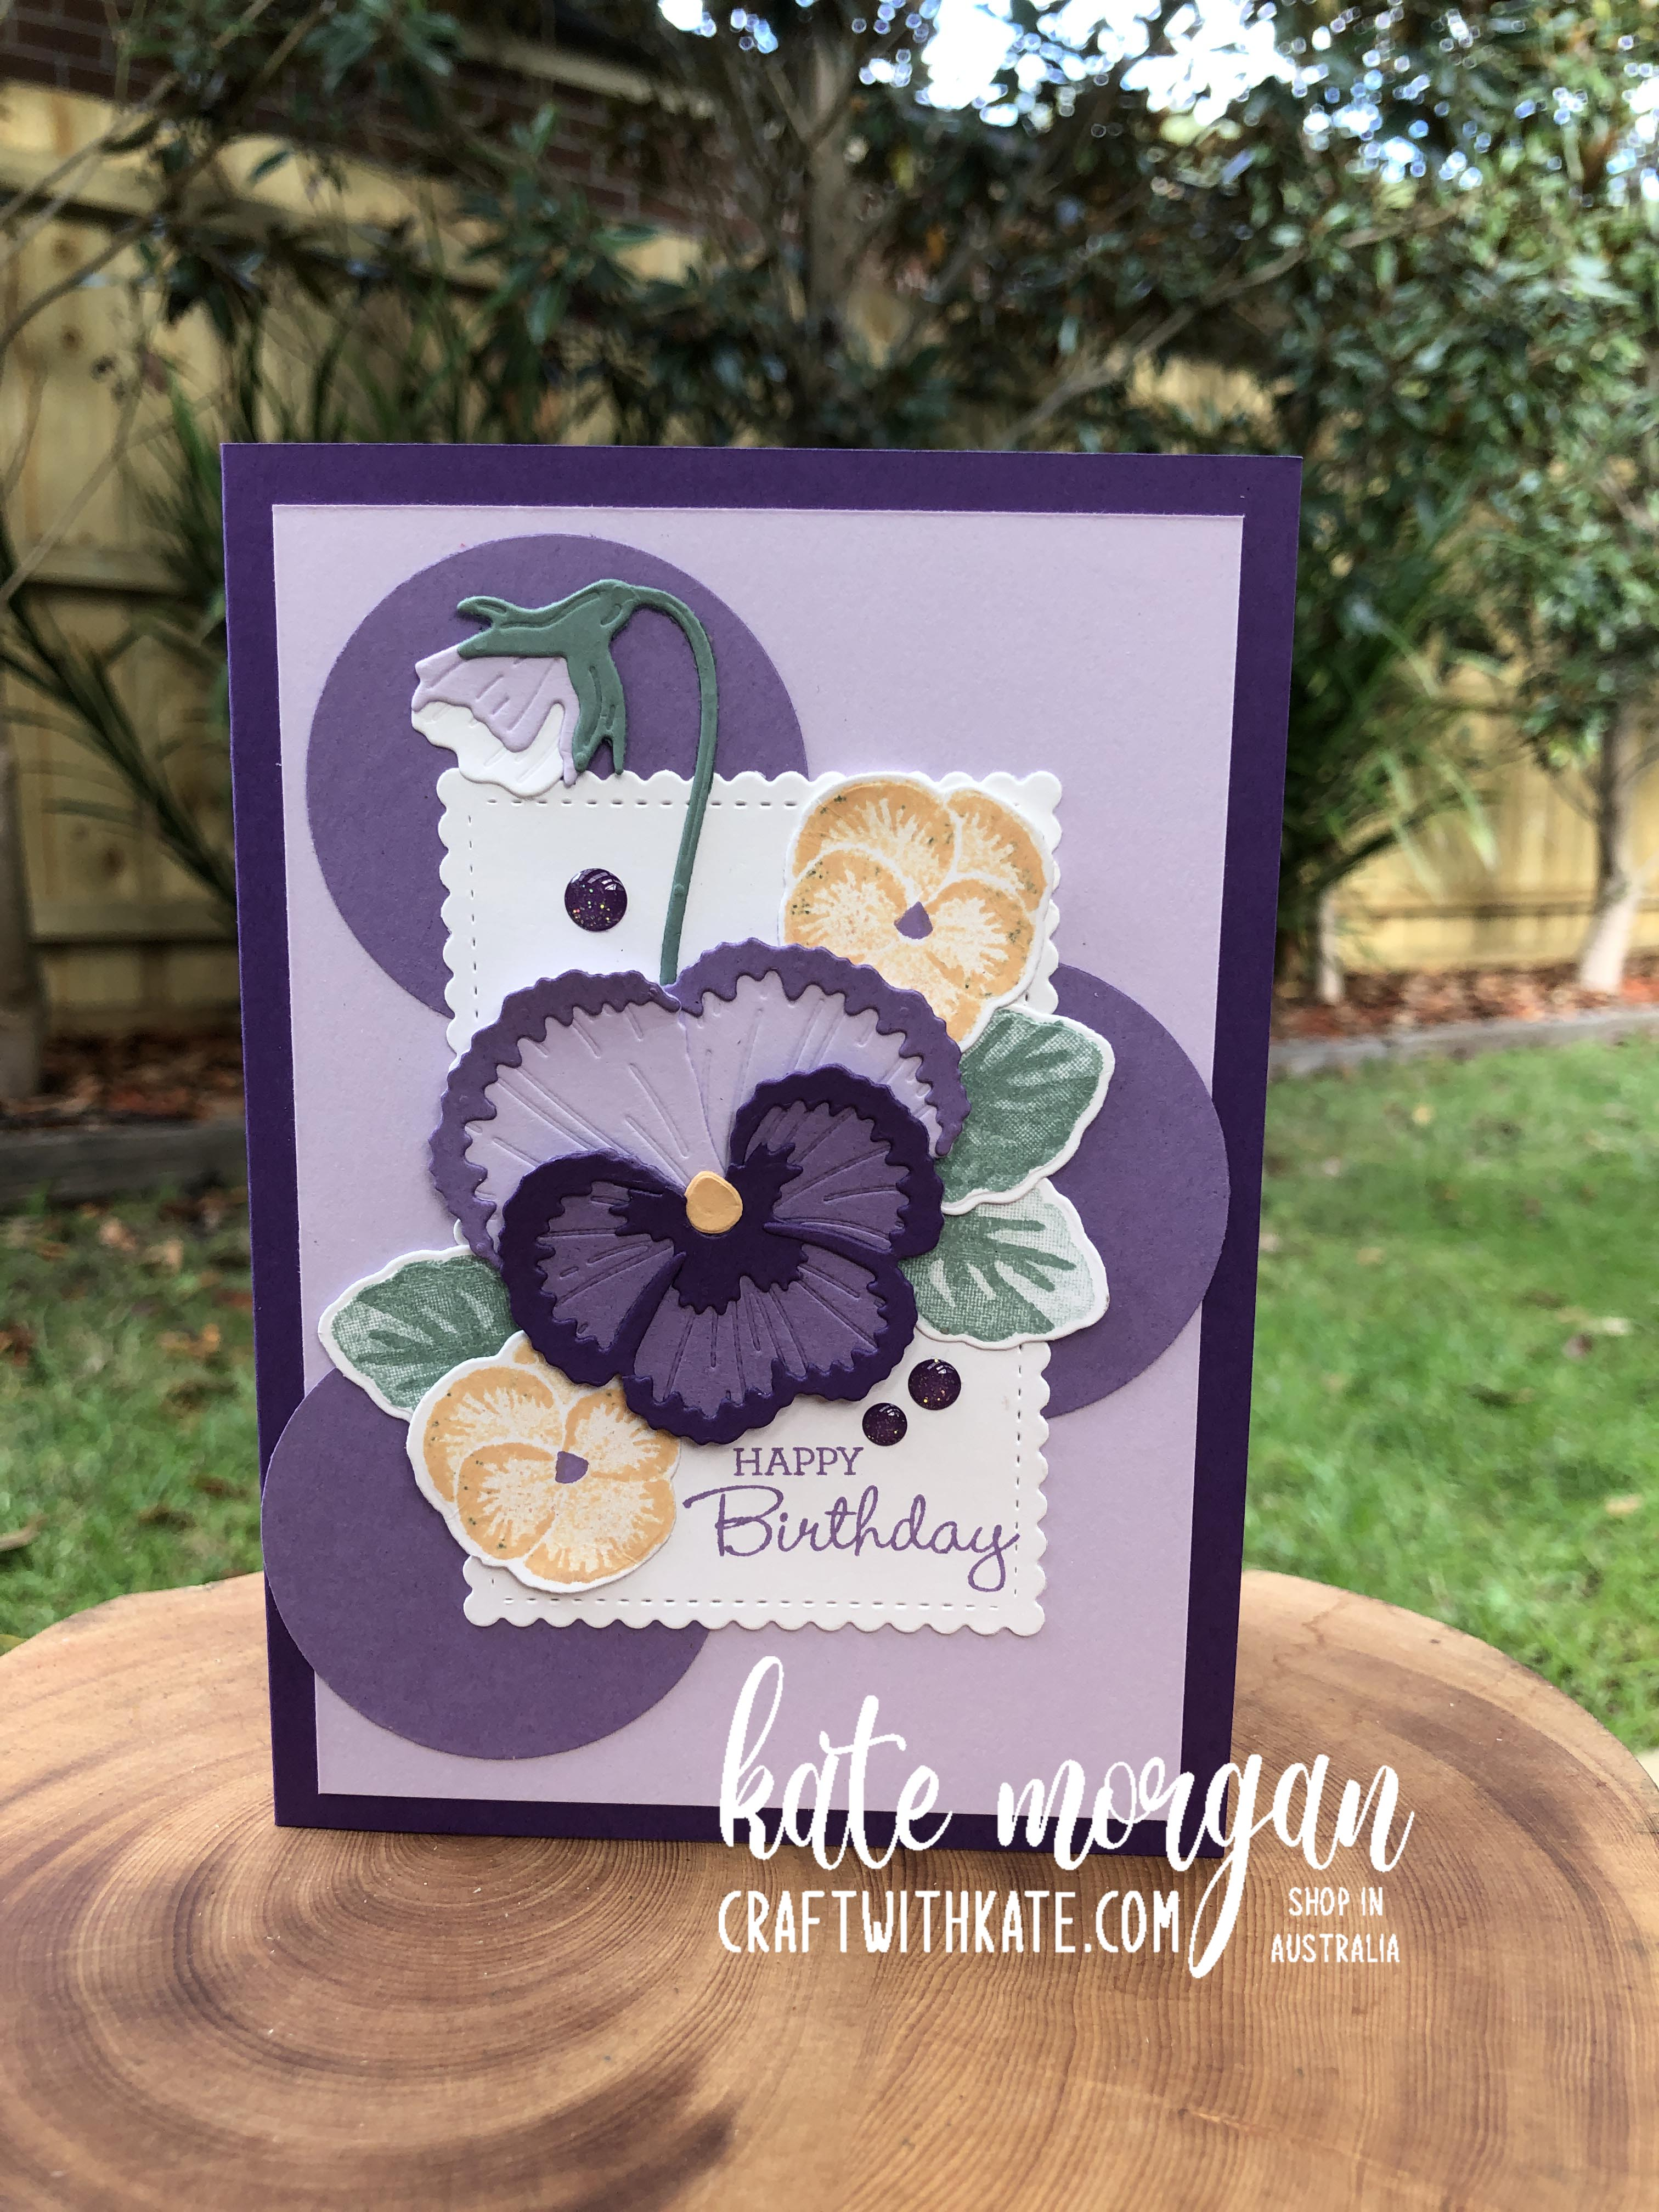 Farewell Purple Posy, Pansy Patch by Kate Morgan Stampin Up Australia 2021